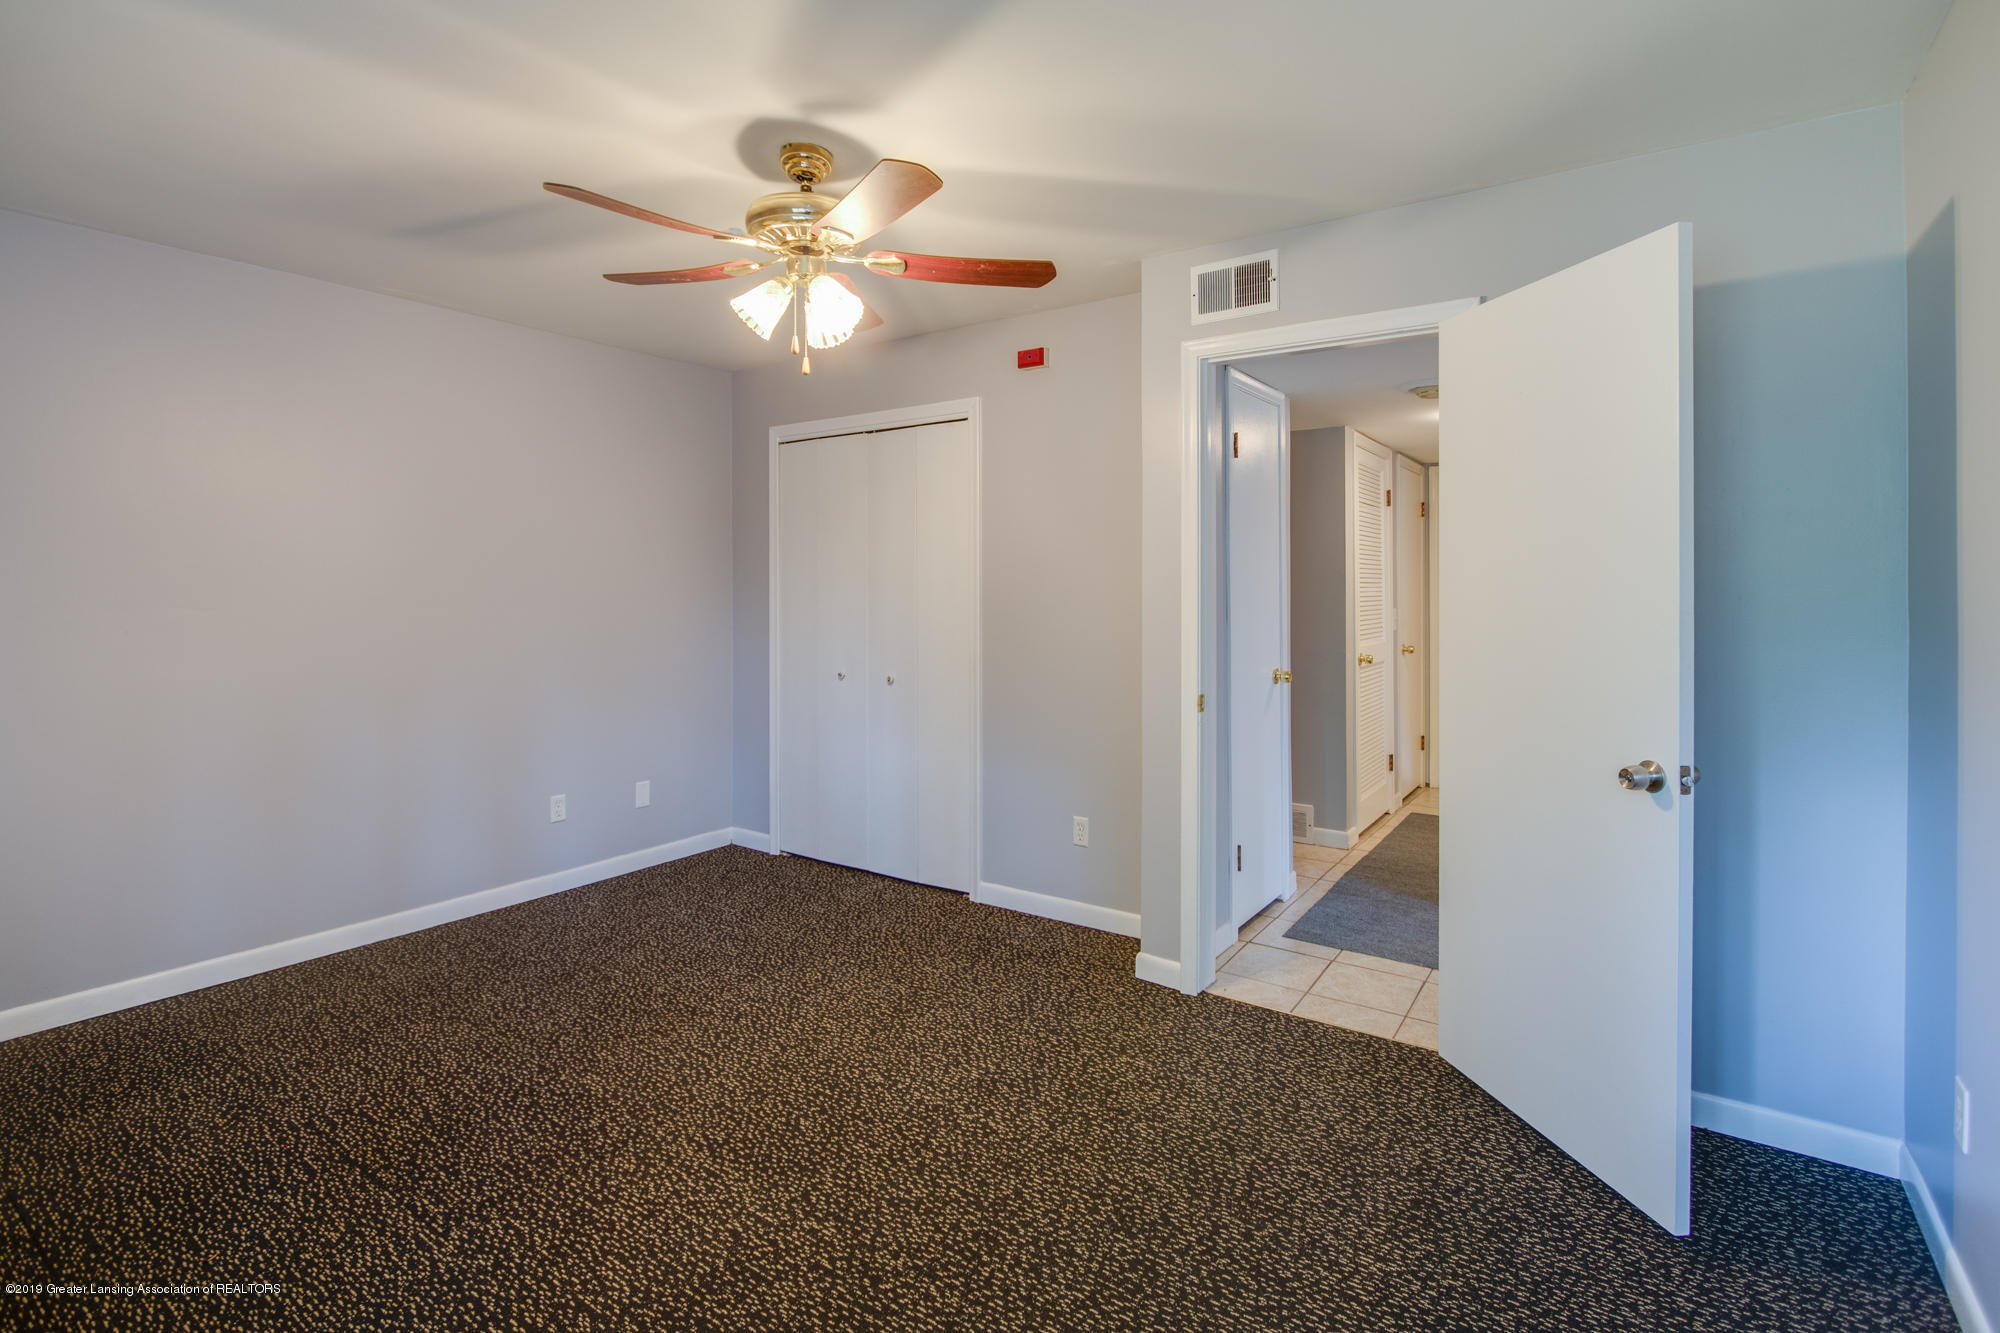 500 Woodingham Dr APT 2 - 500_Woodingham_JEFF-12 - 11